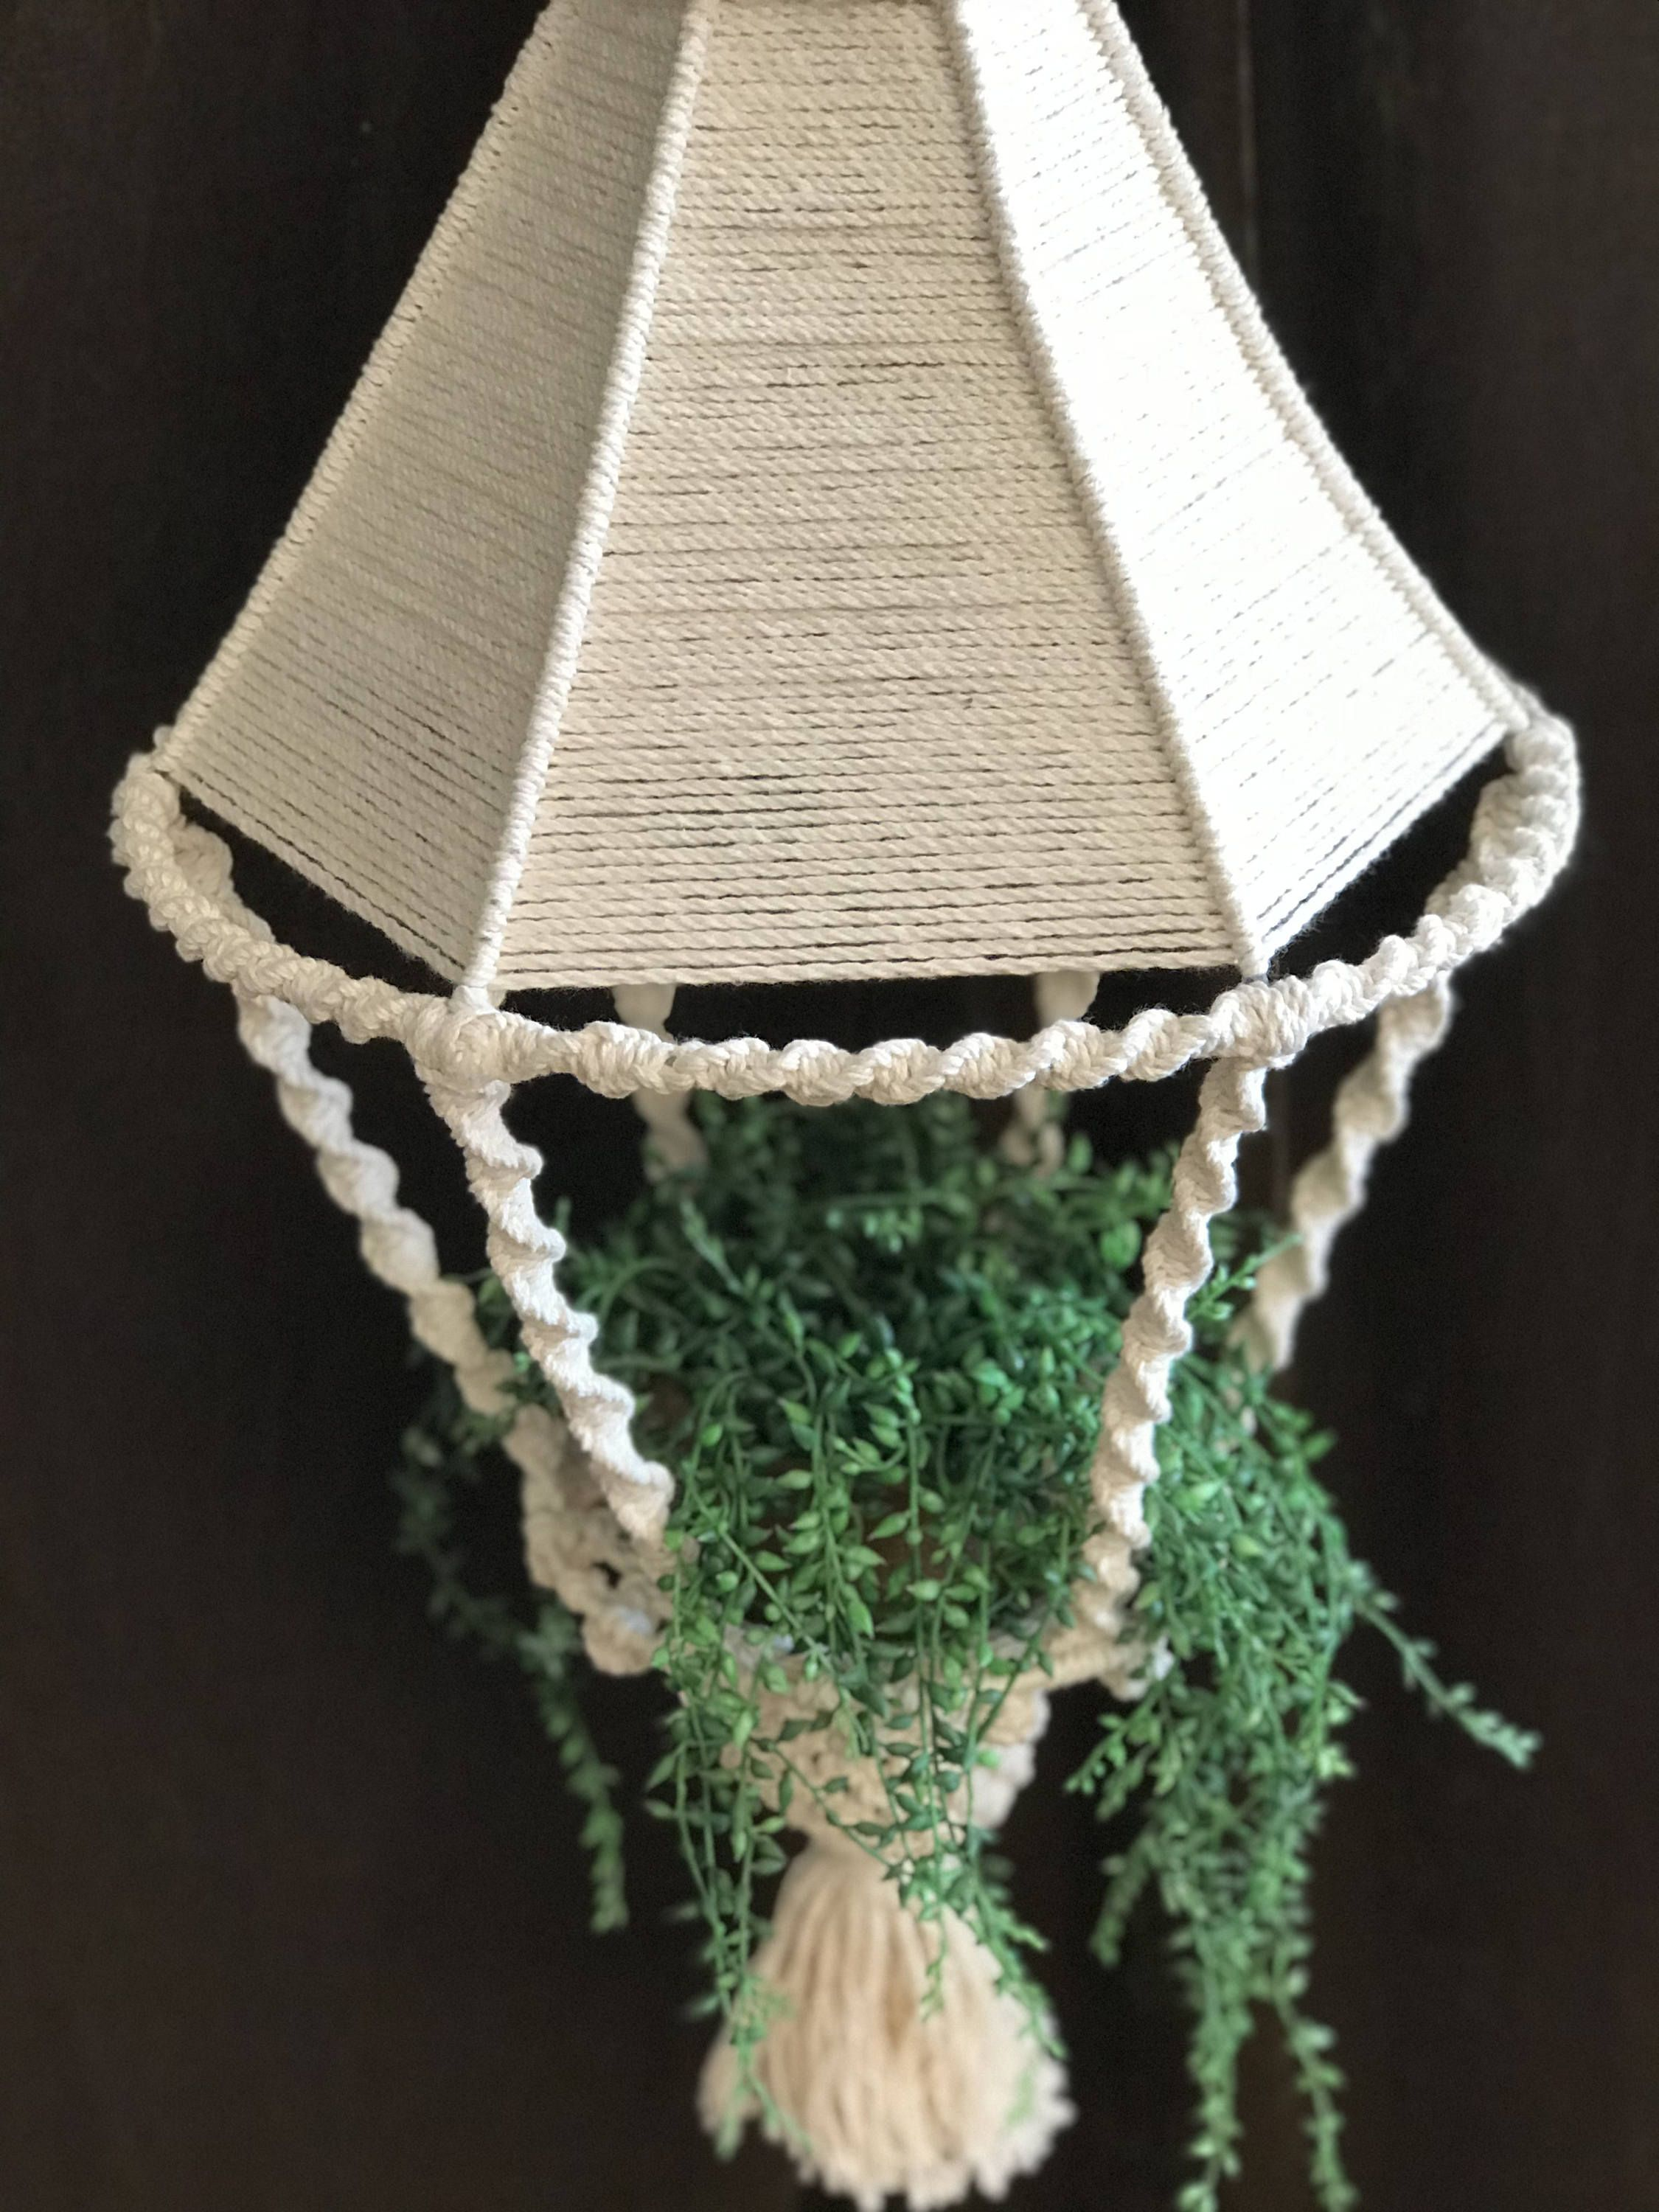 bohemian edison in and fixtures orb hanging farmhouse fixture turkish hammered lamps with light metal full old preferable that mandatory lamp lantern silver lights chandeliers mosaic lighting of world on top cha bulb size moroccan boho pendant lanterns chandelier industrial plug